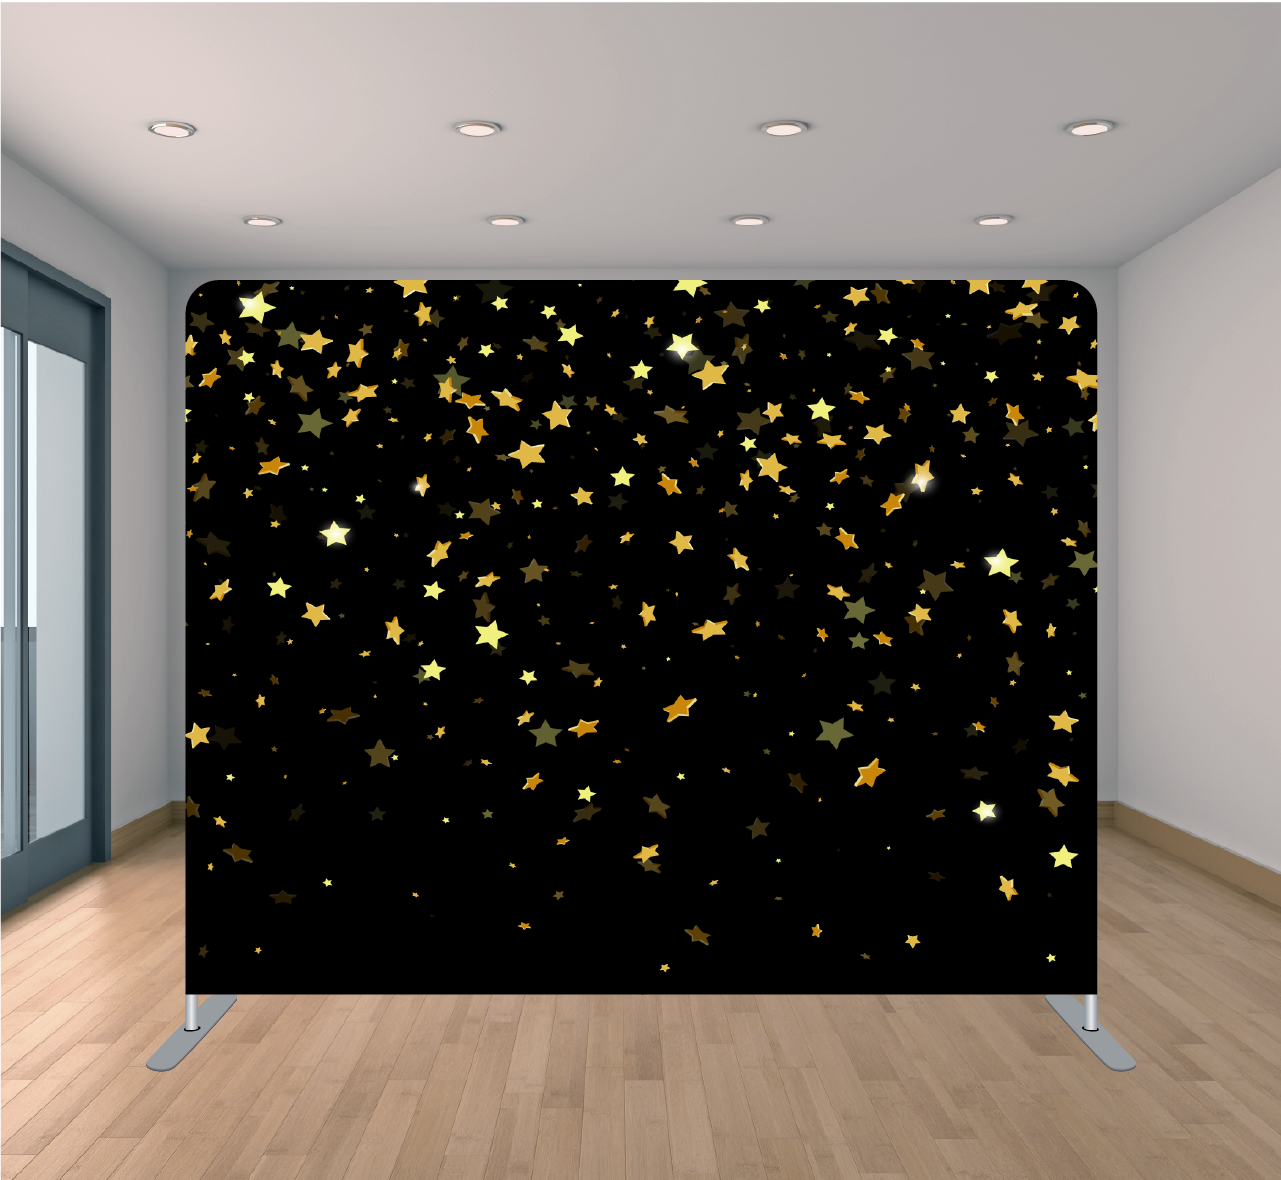 8x8ft Pillowcase Tension Backdrop- Black with Yellow Stars